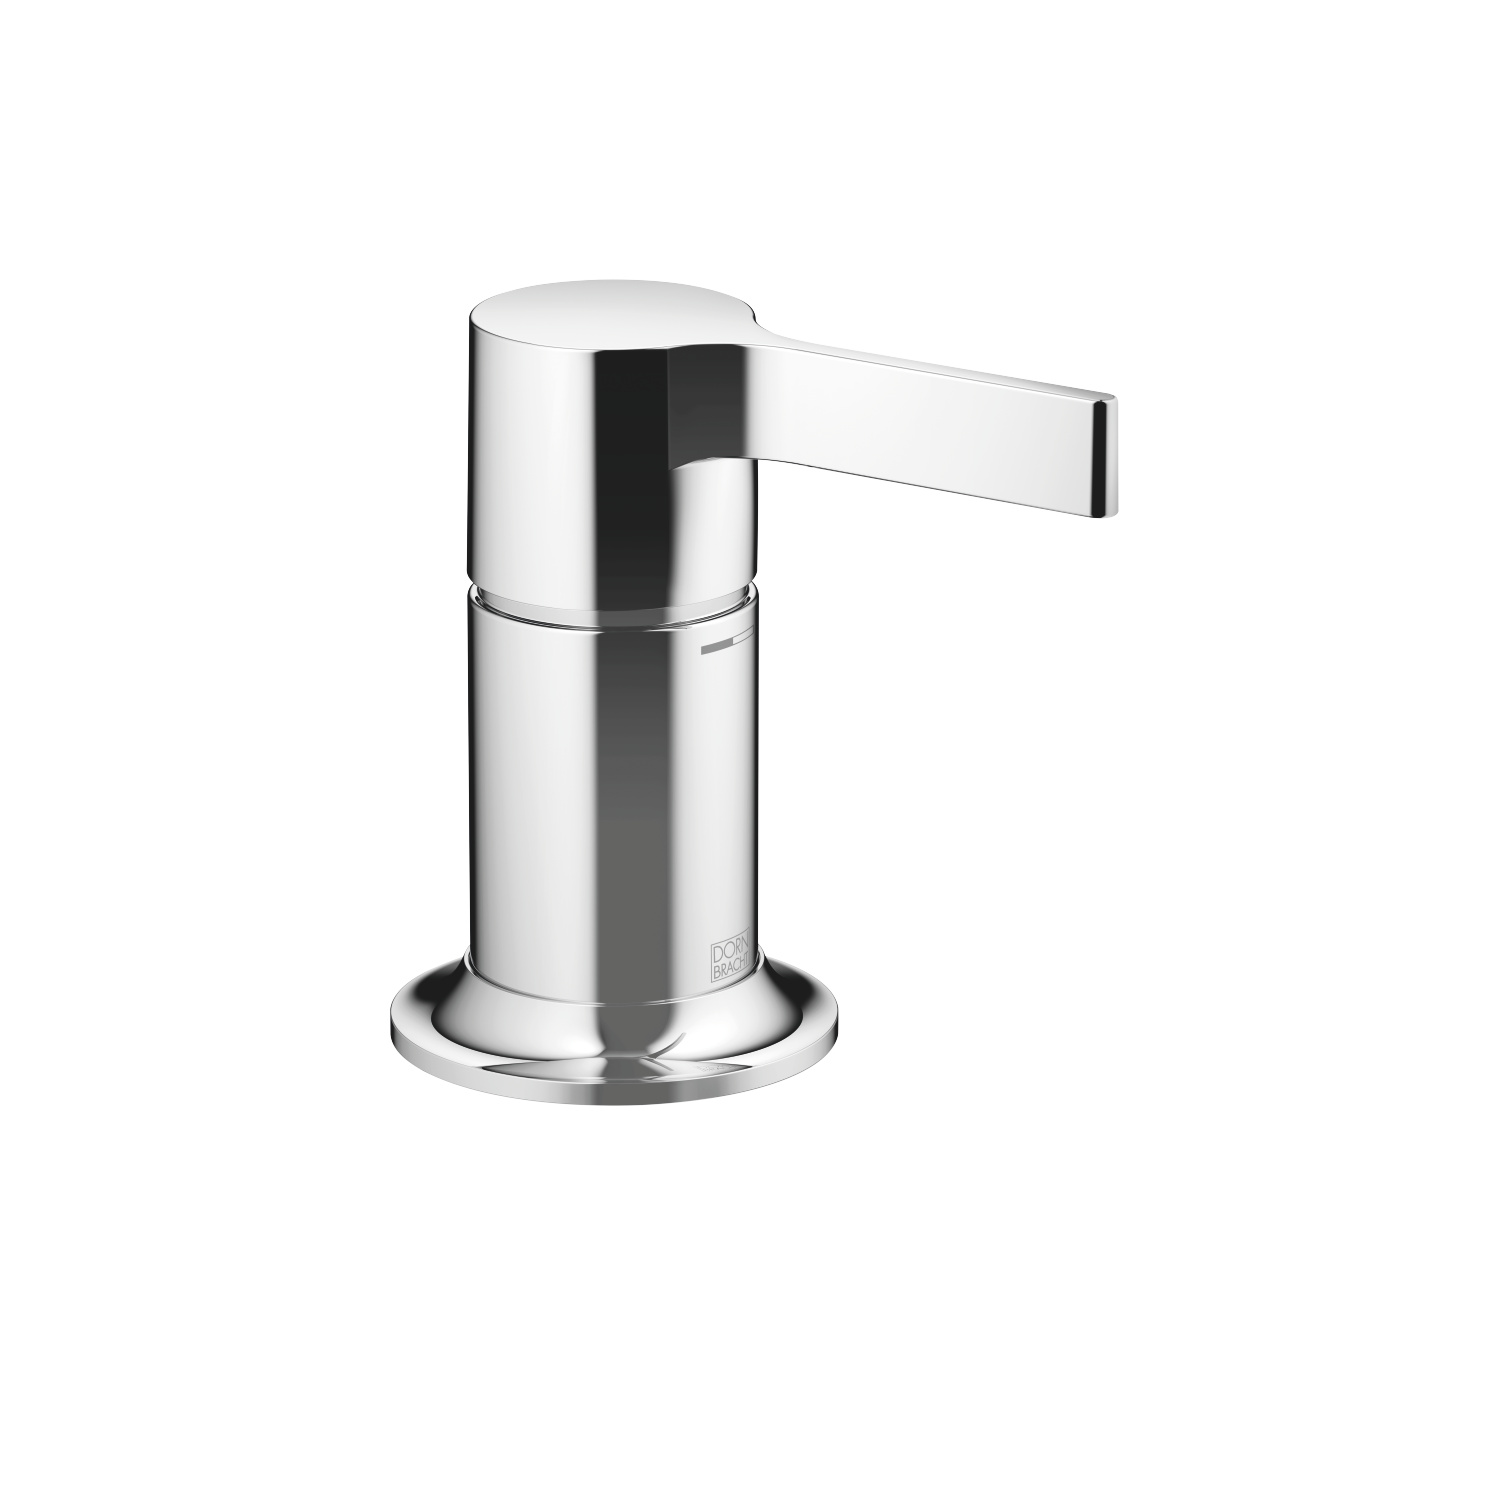 Single-lever bath mixer for bath rim or tile edge installation - polished chrome - 29 300 809-00